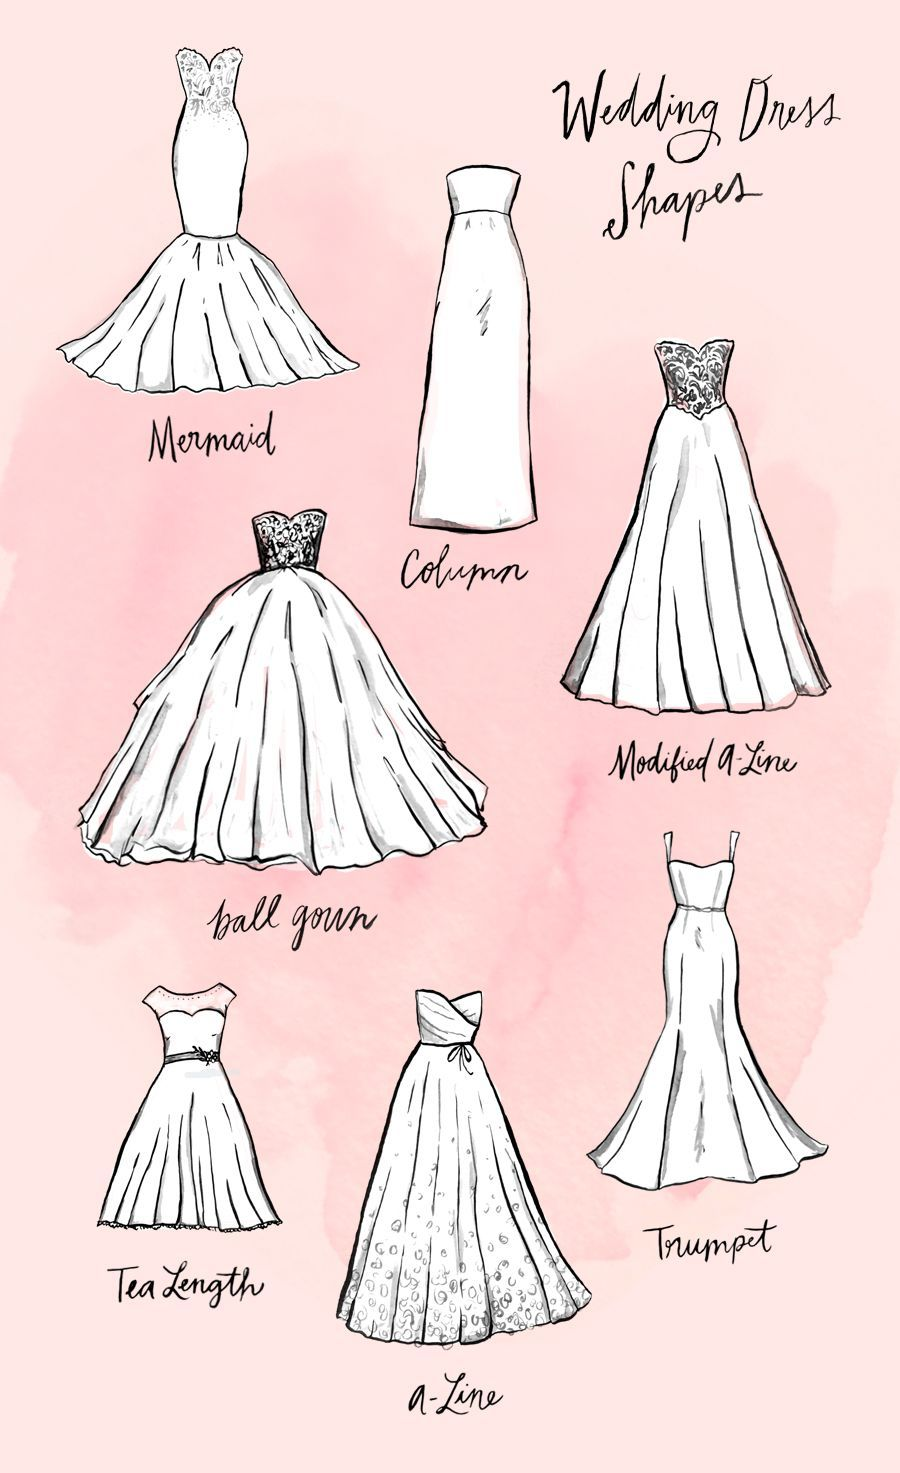 Everything You Ever Wanted To Know About Wedding Dress Silhouettes Wedding Dress Shapes Fashion Drawing Sketches Dress Sketches